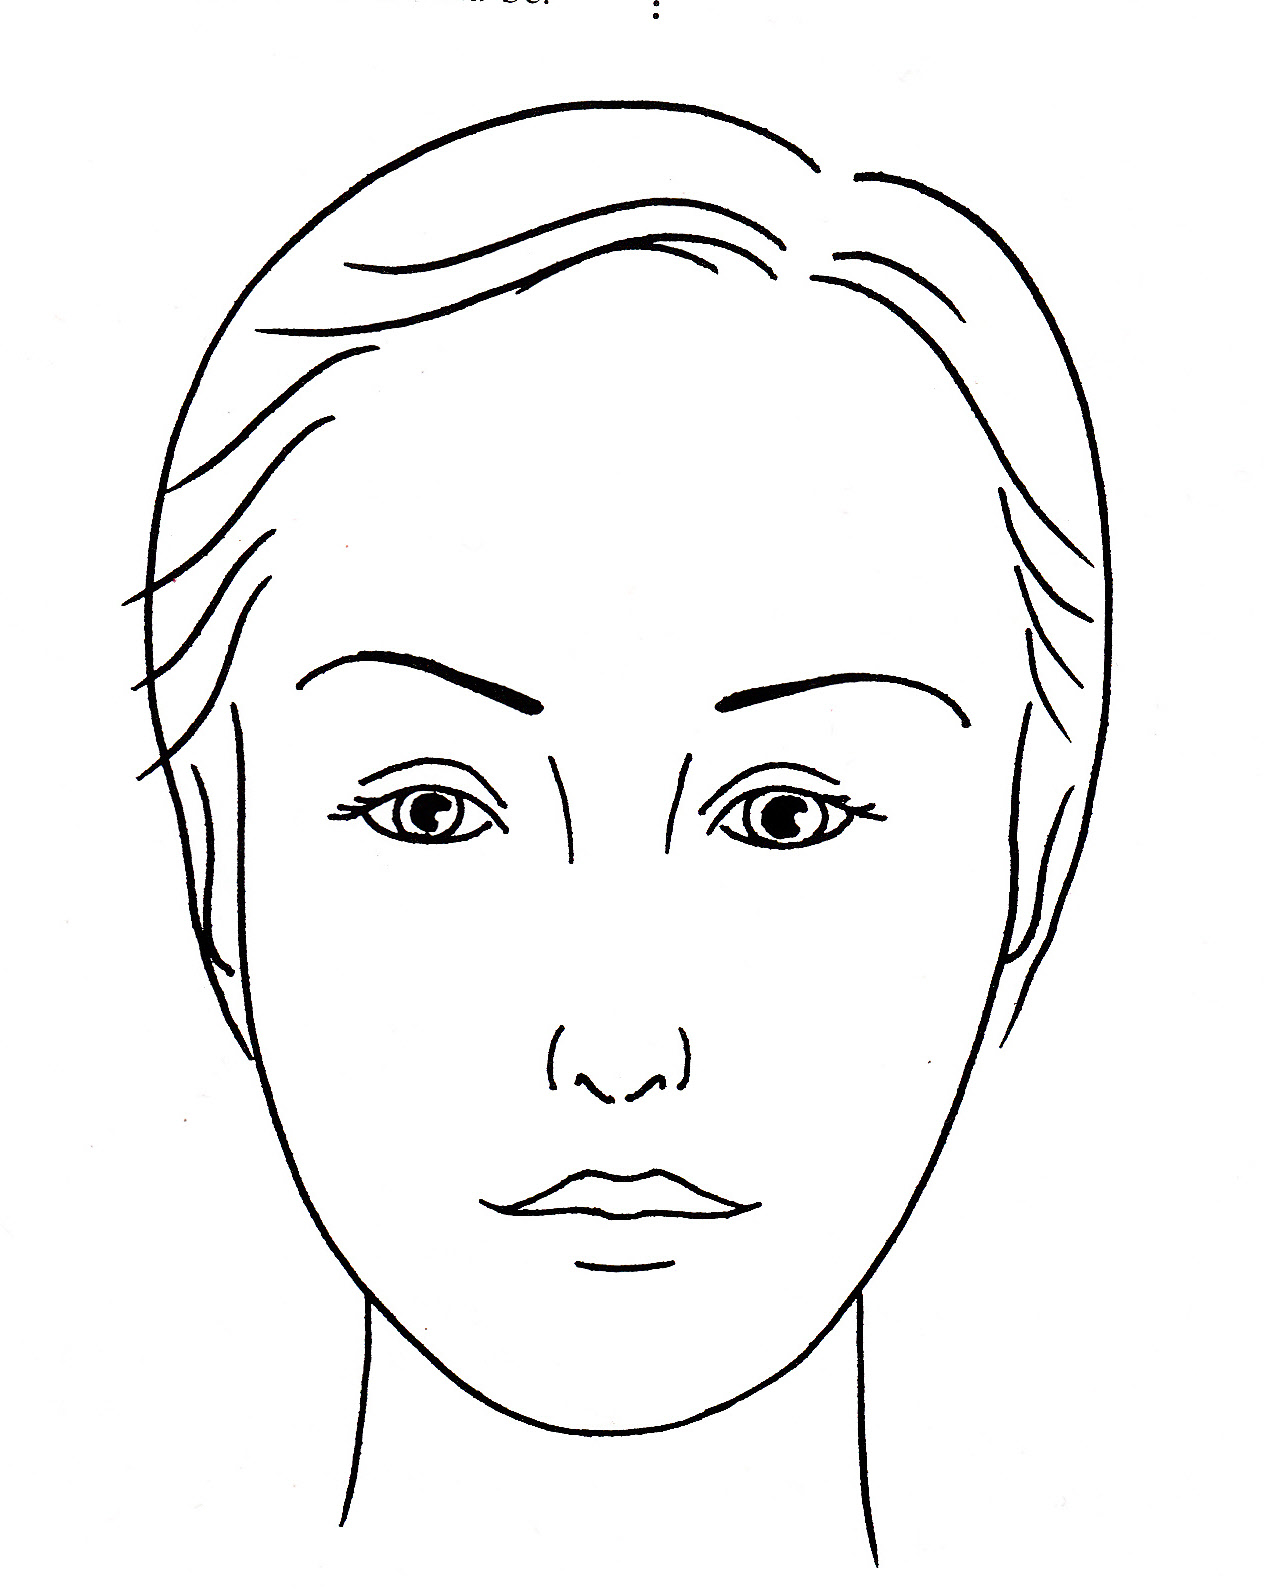 Face template, Templates and Faces on Pinterest